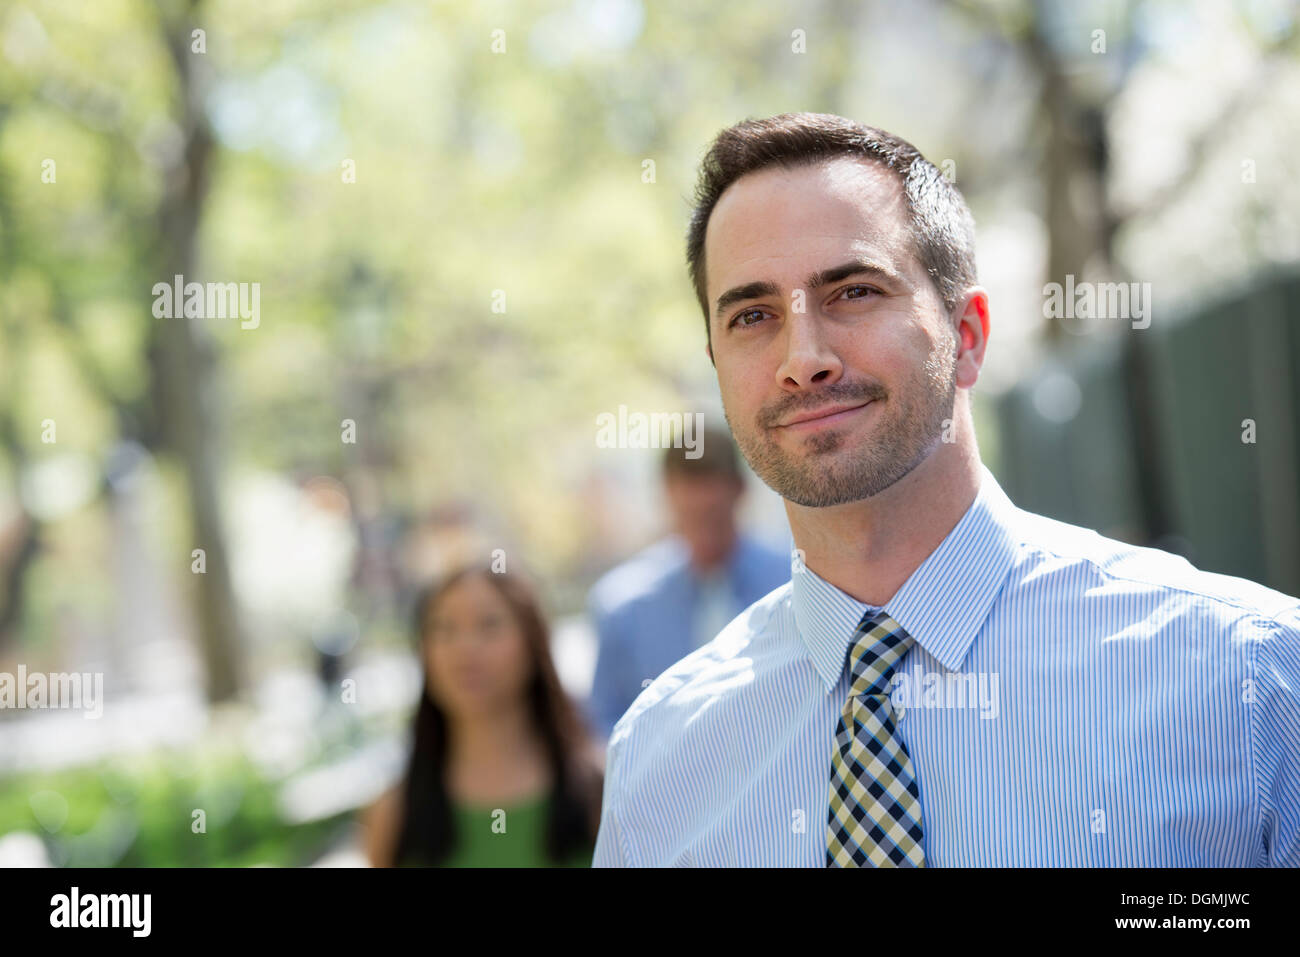 A small group of people, a businesswoman and two businessmen outdoors in the city. - Stock Image